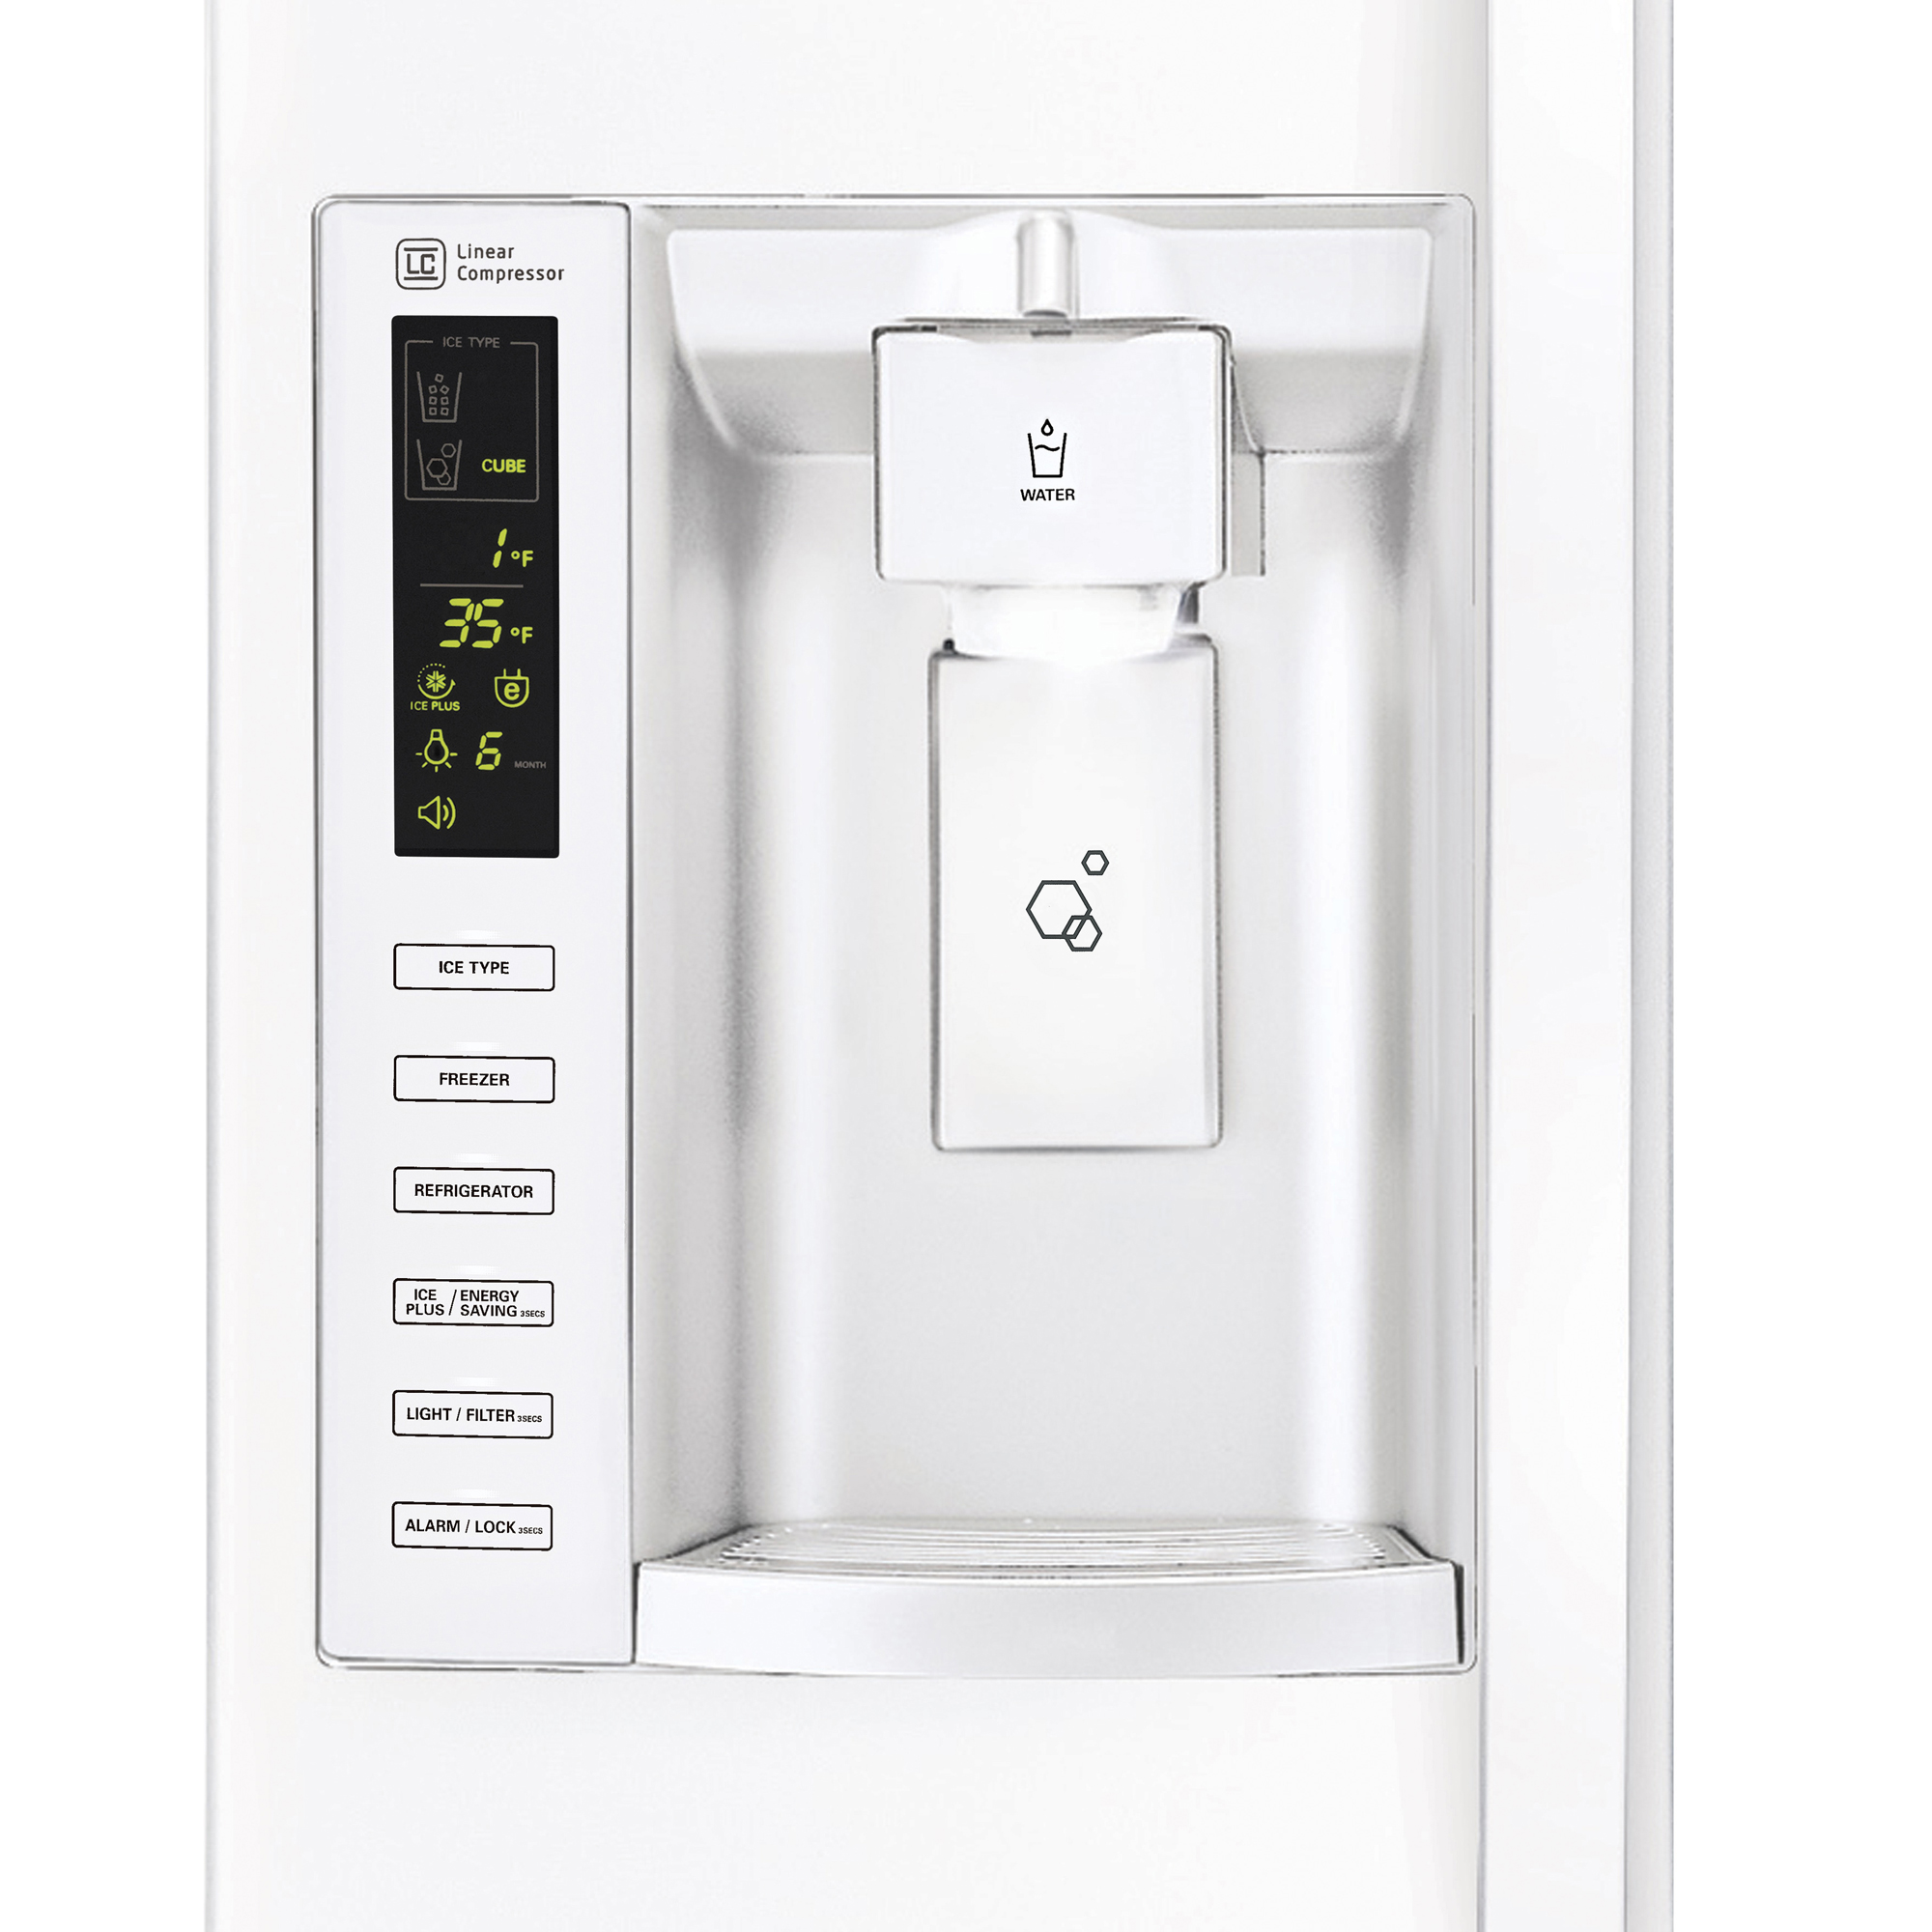 LG LSXS26326W 26.2 cu. ft. Large Capacity Side-by-Side Refrigerator w/ Ice & Water Dispenser